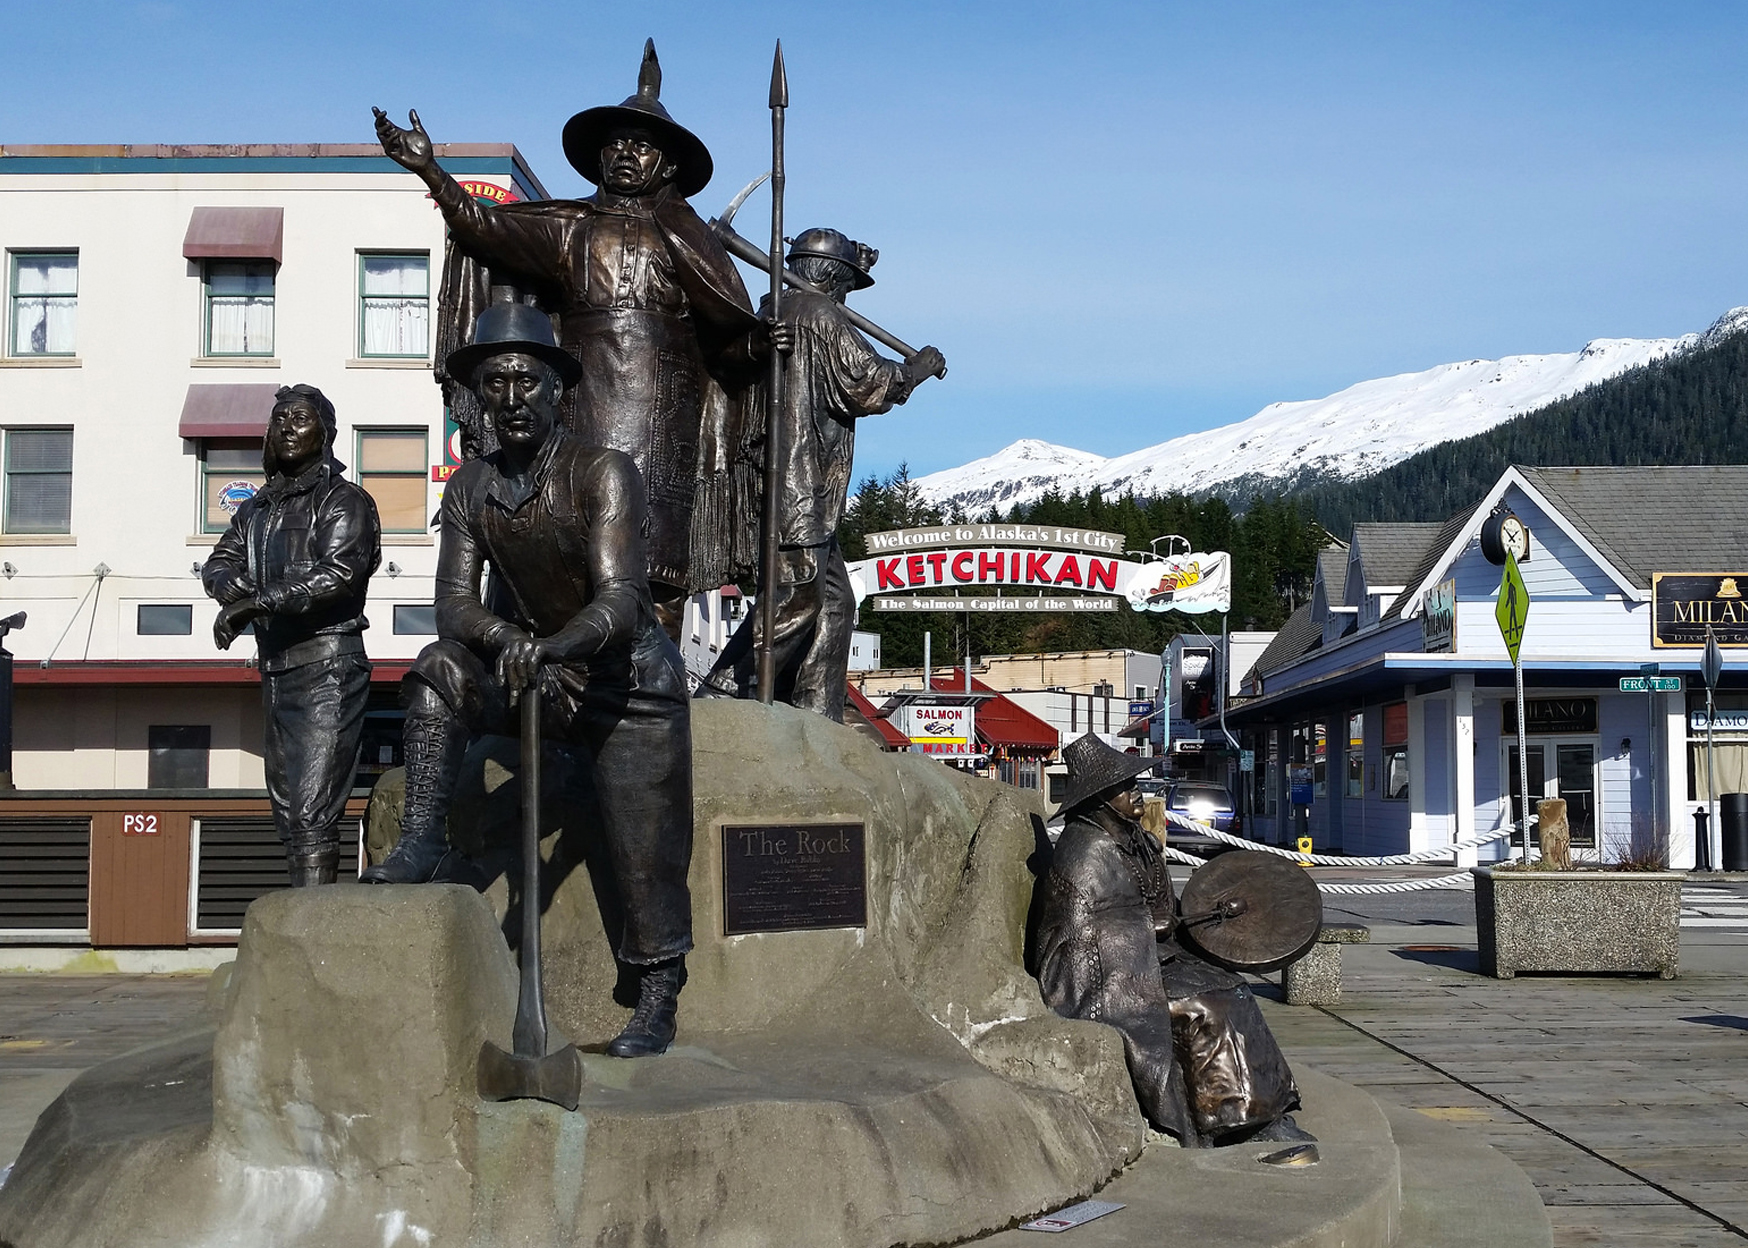 Dave Rubin's  The Rock , right next to the Ketchikan Visitors Bureau.